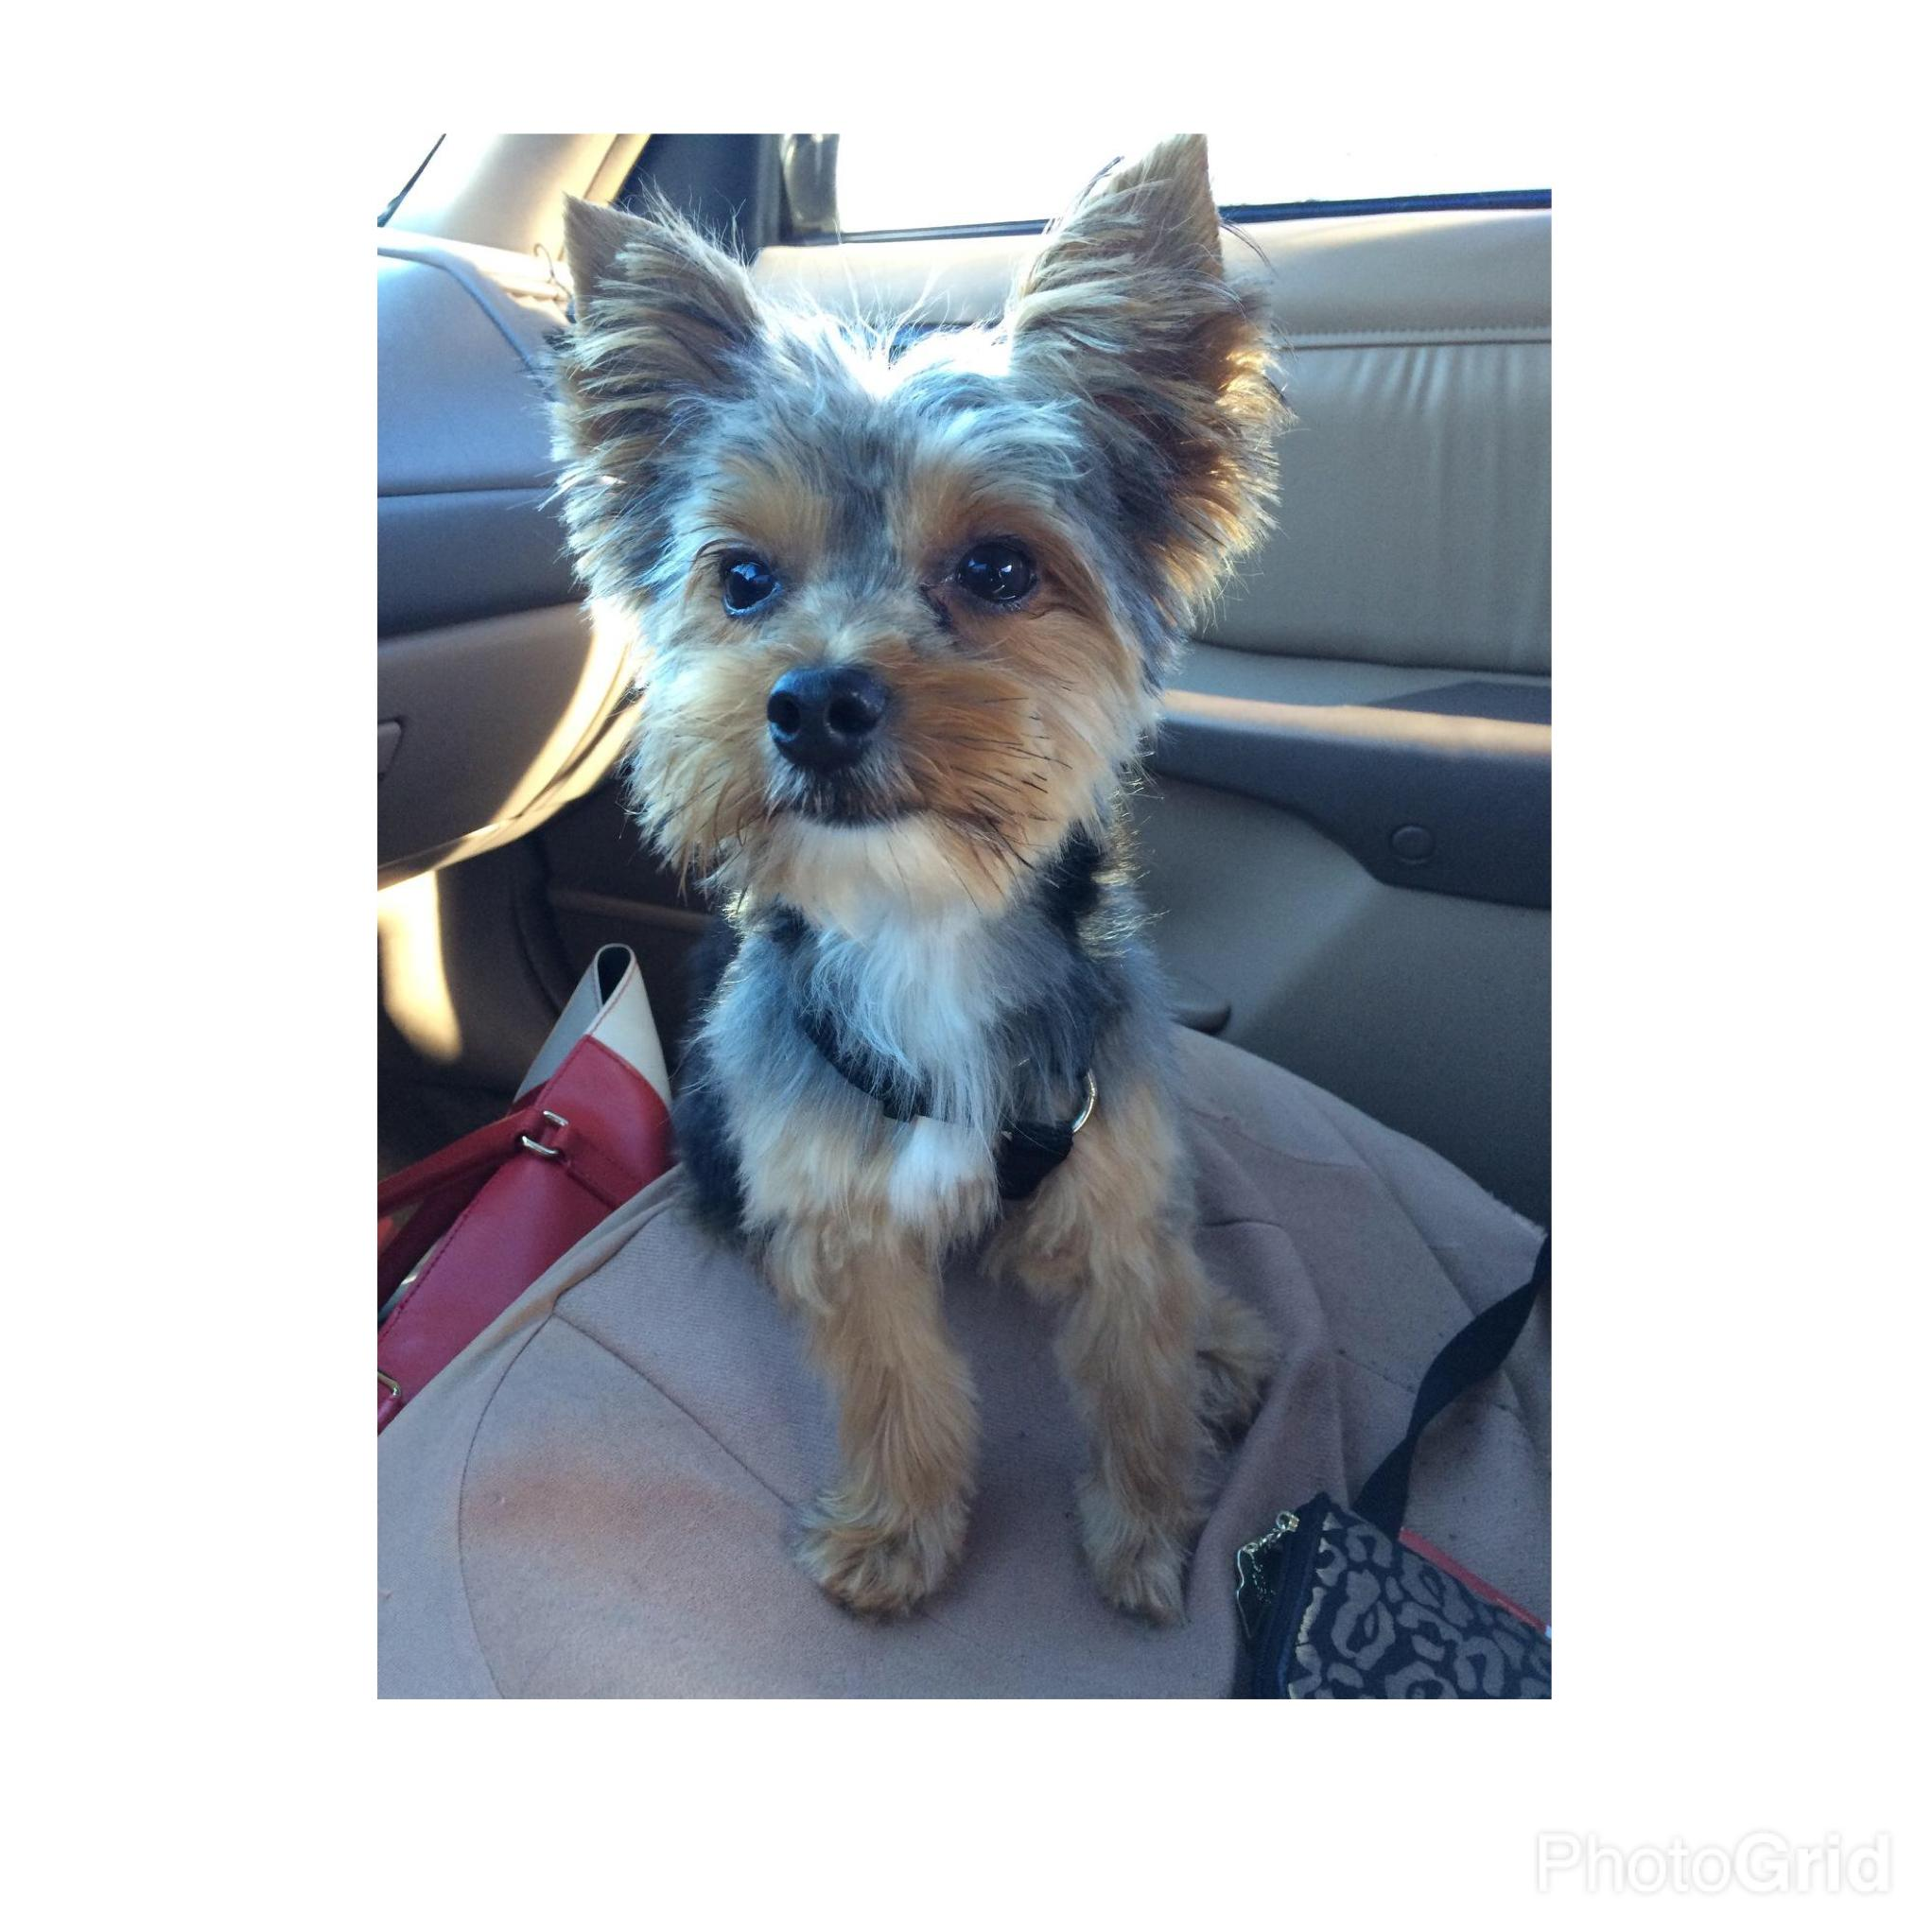 lost and found pets lost male dog last seen near lane columbia sc united states